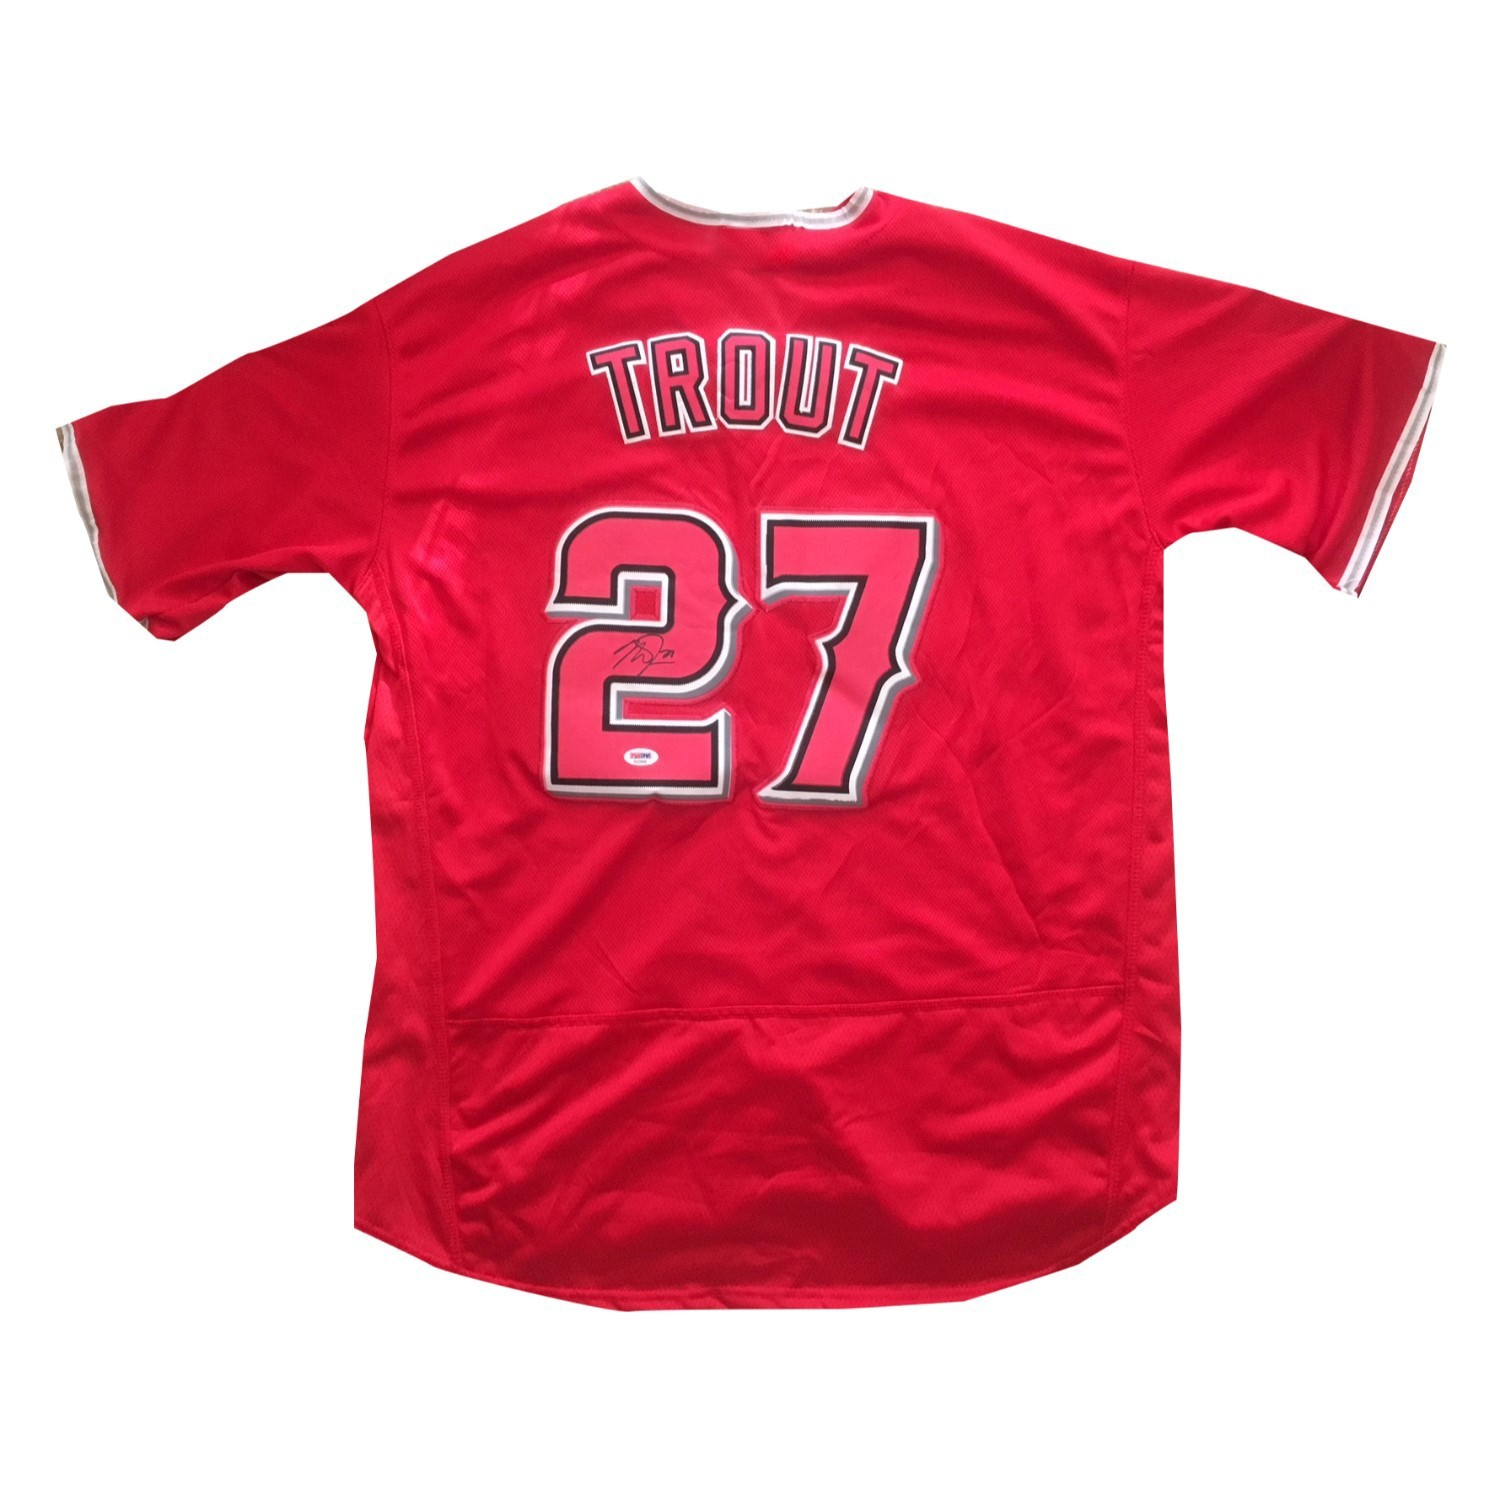 pretty nice 81af0 081ed Mike Trout Autographed Angels Signed Baseball Jersey PSA DNA COA